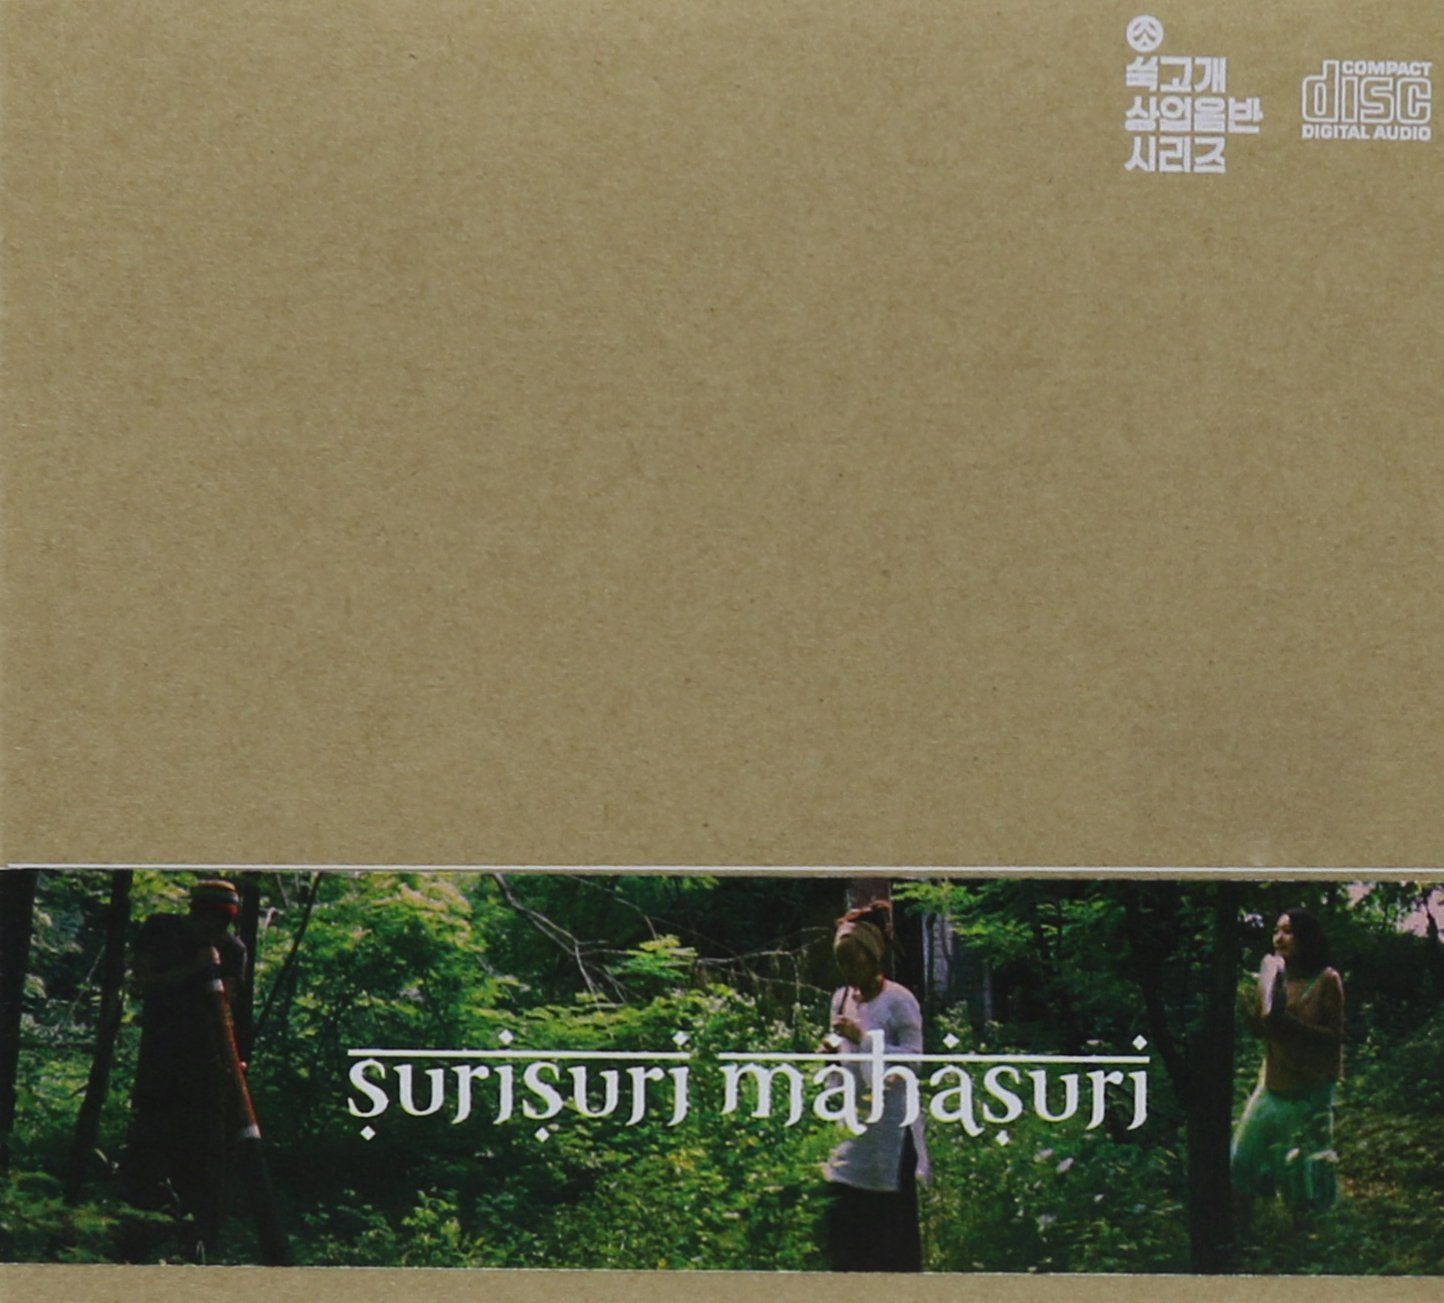 CD : Mahasuri Surisuri - Earth Music (CD)